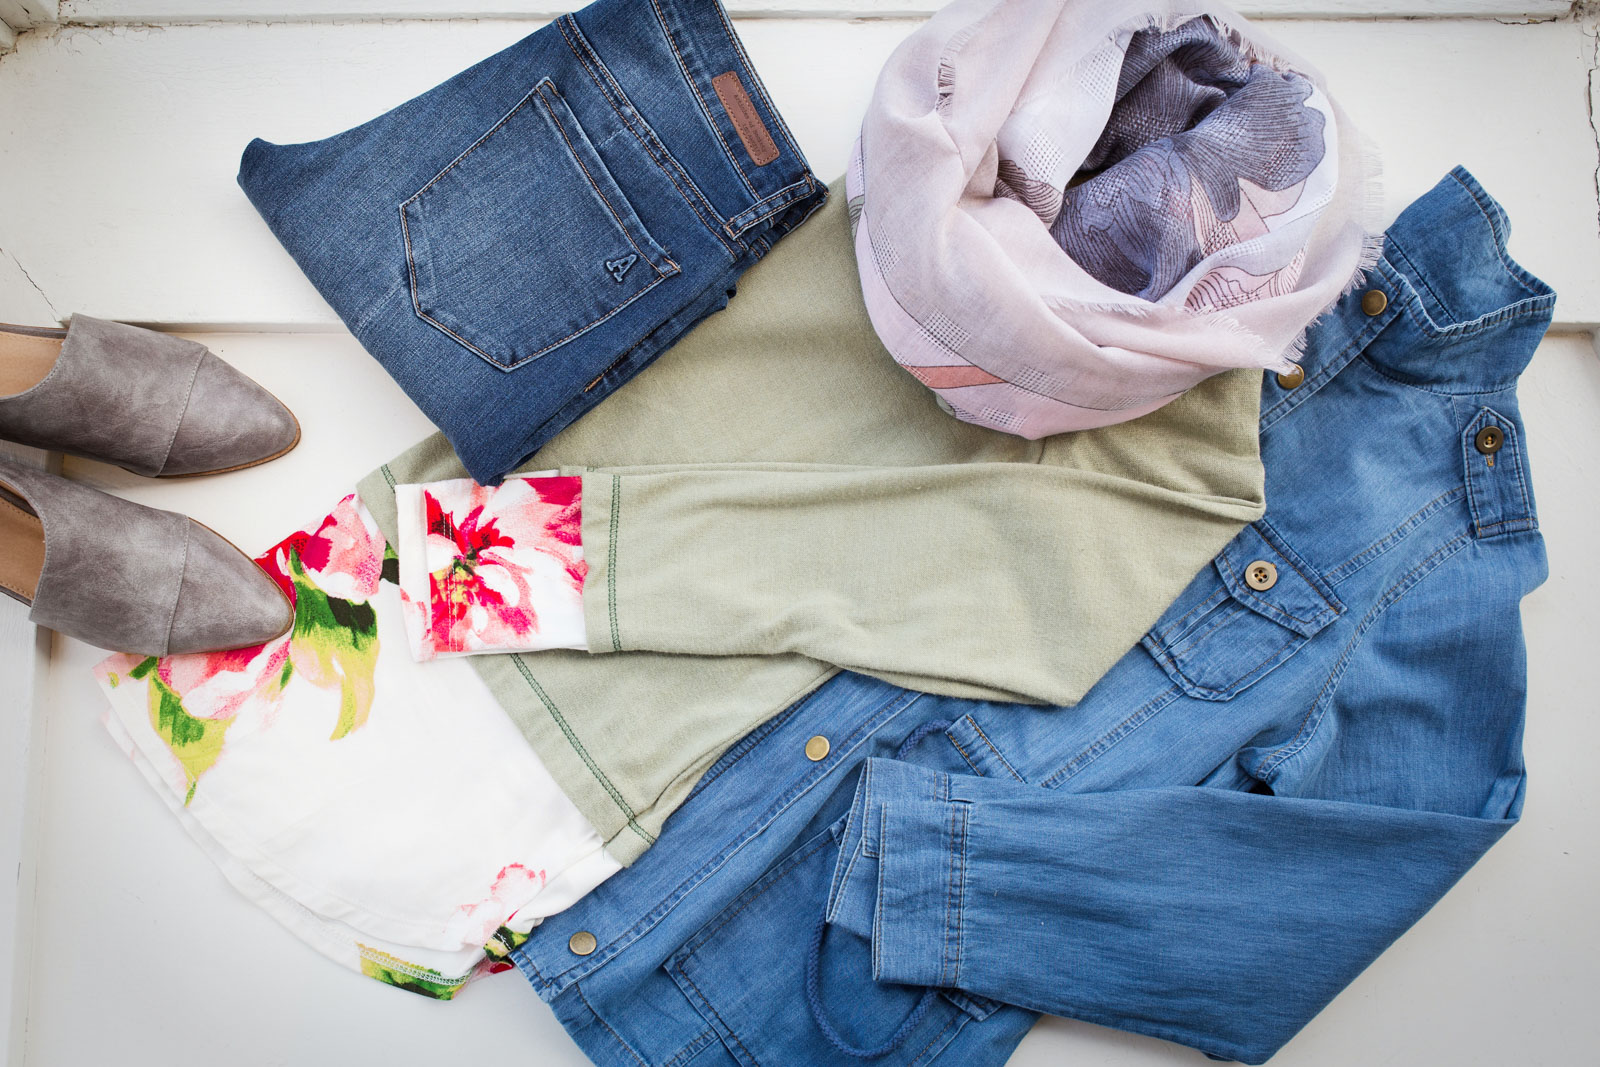 Meadow boutique seattle retail clothing store Yuliya Rae photography branding services-11.jpg